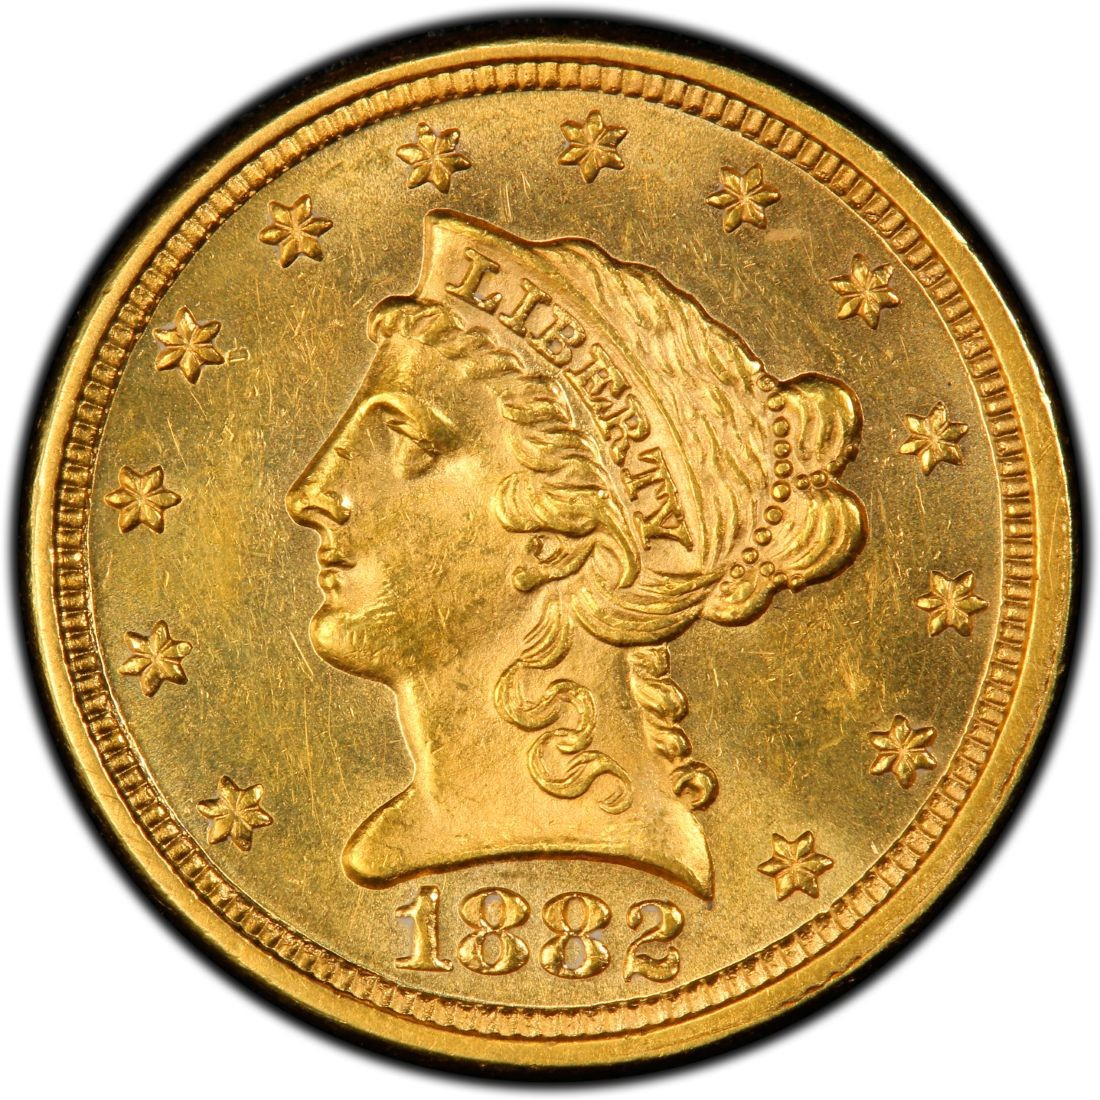 1882 Liberty Head 2 50 Gold Quarter Eagle Coin Values And